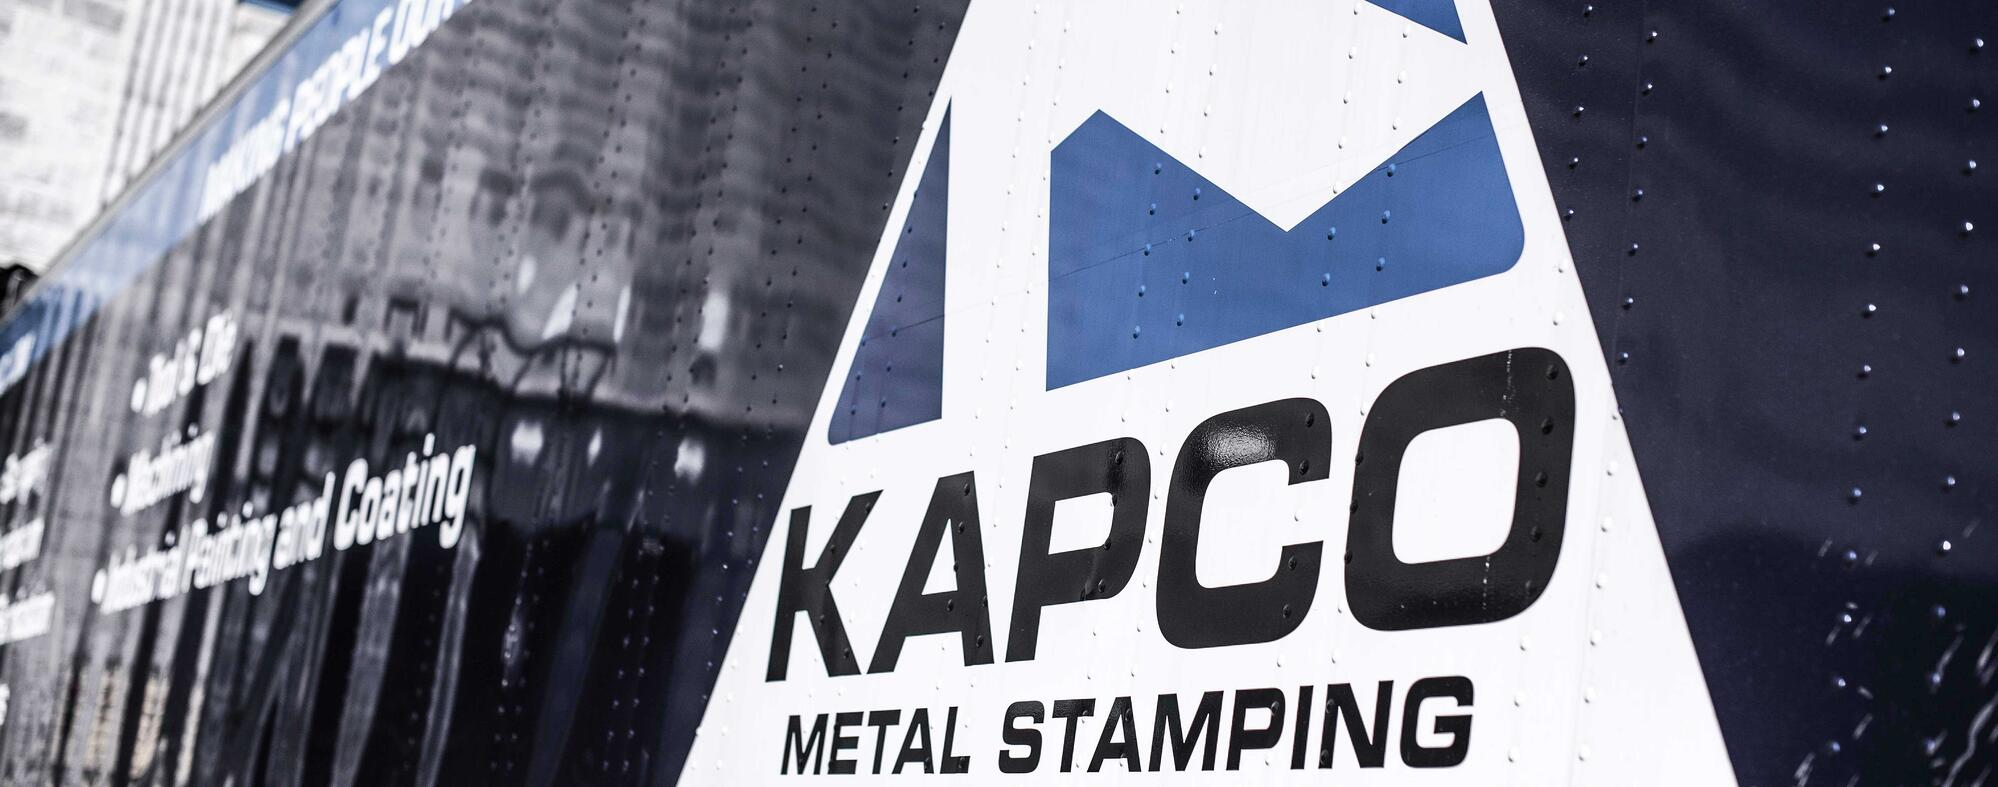 Kapco_Truck_Small_Wide2.jpg